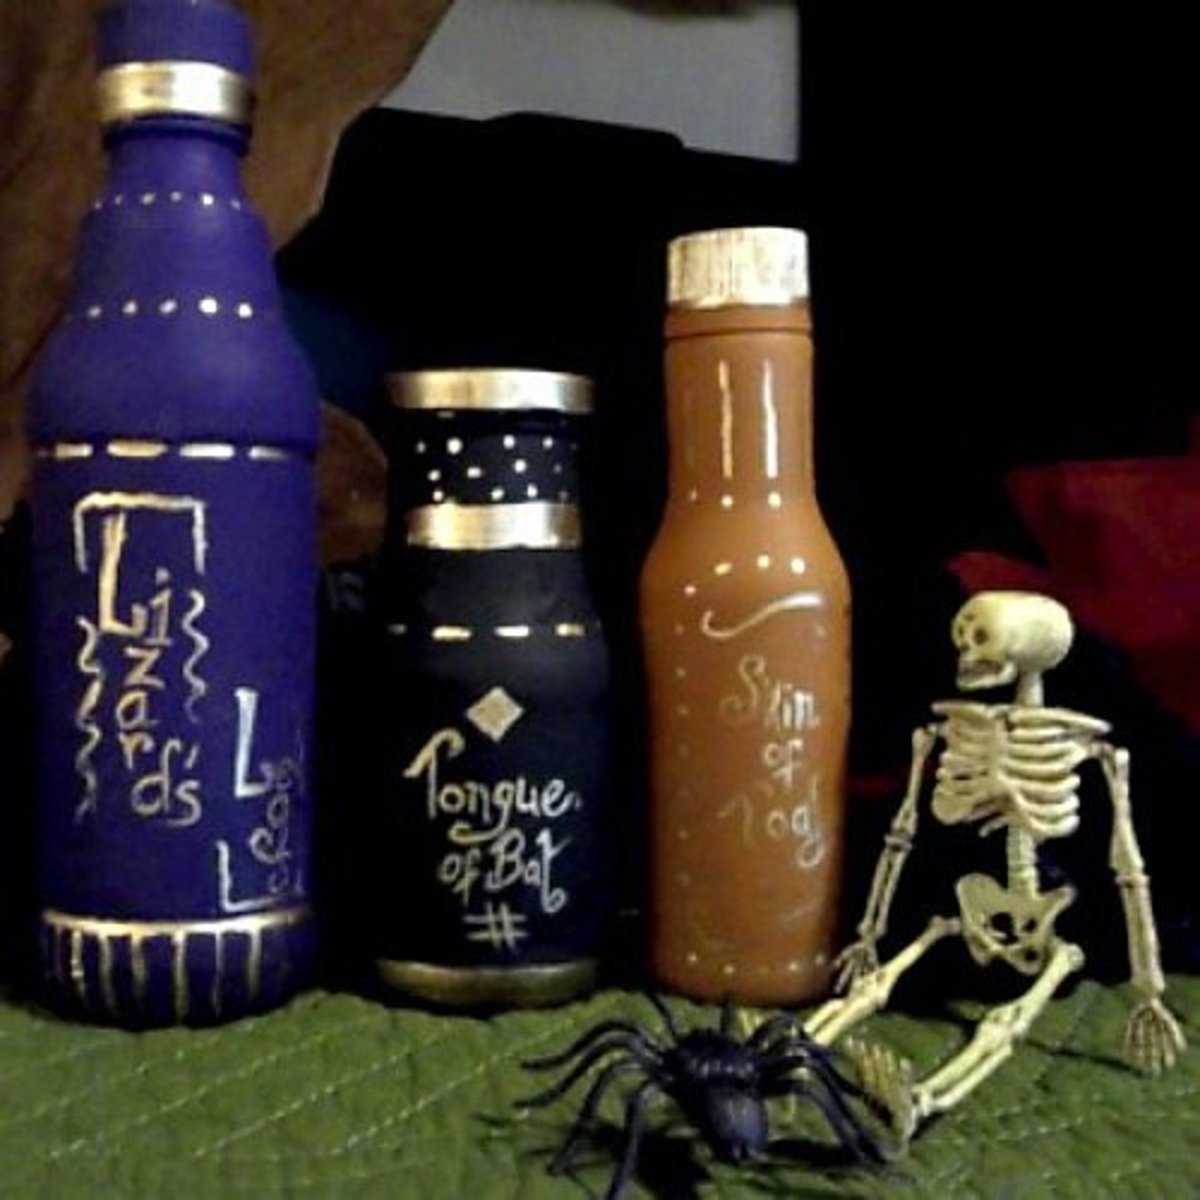 witchs-potion-bottles